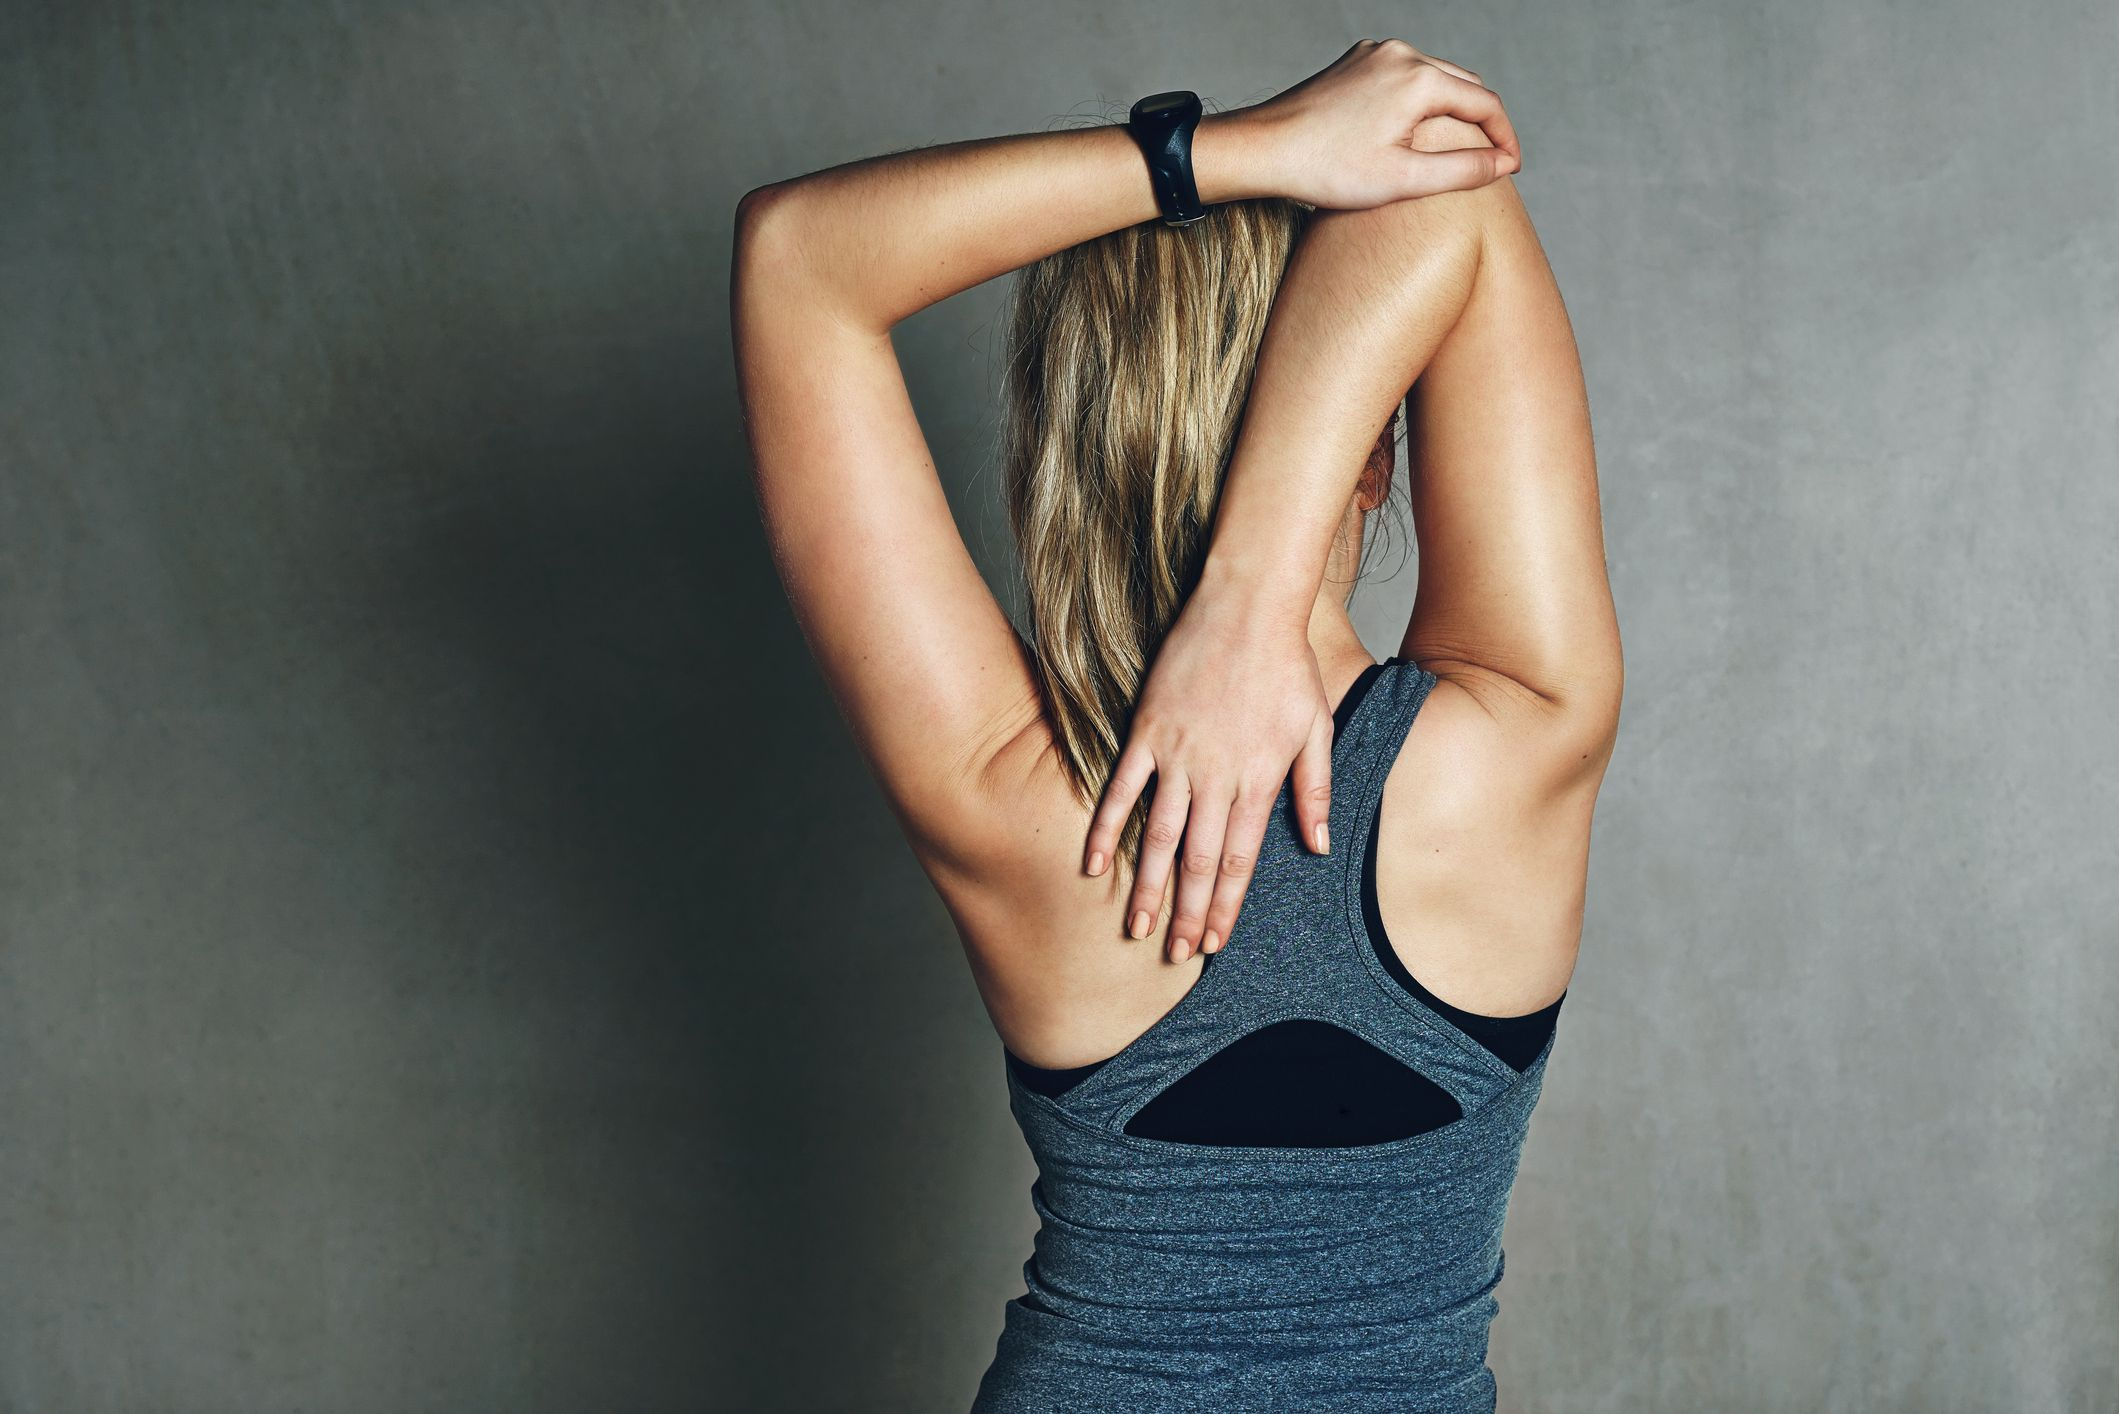 Exactly How to Deal With a Pulled Muscle in Your Back